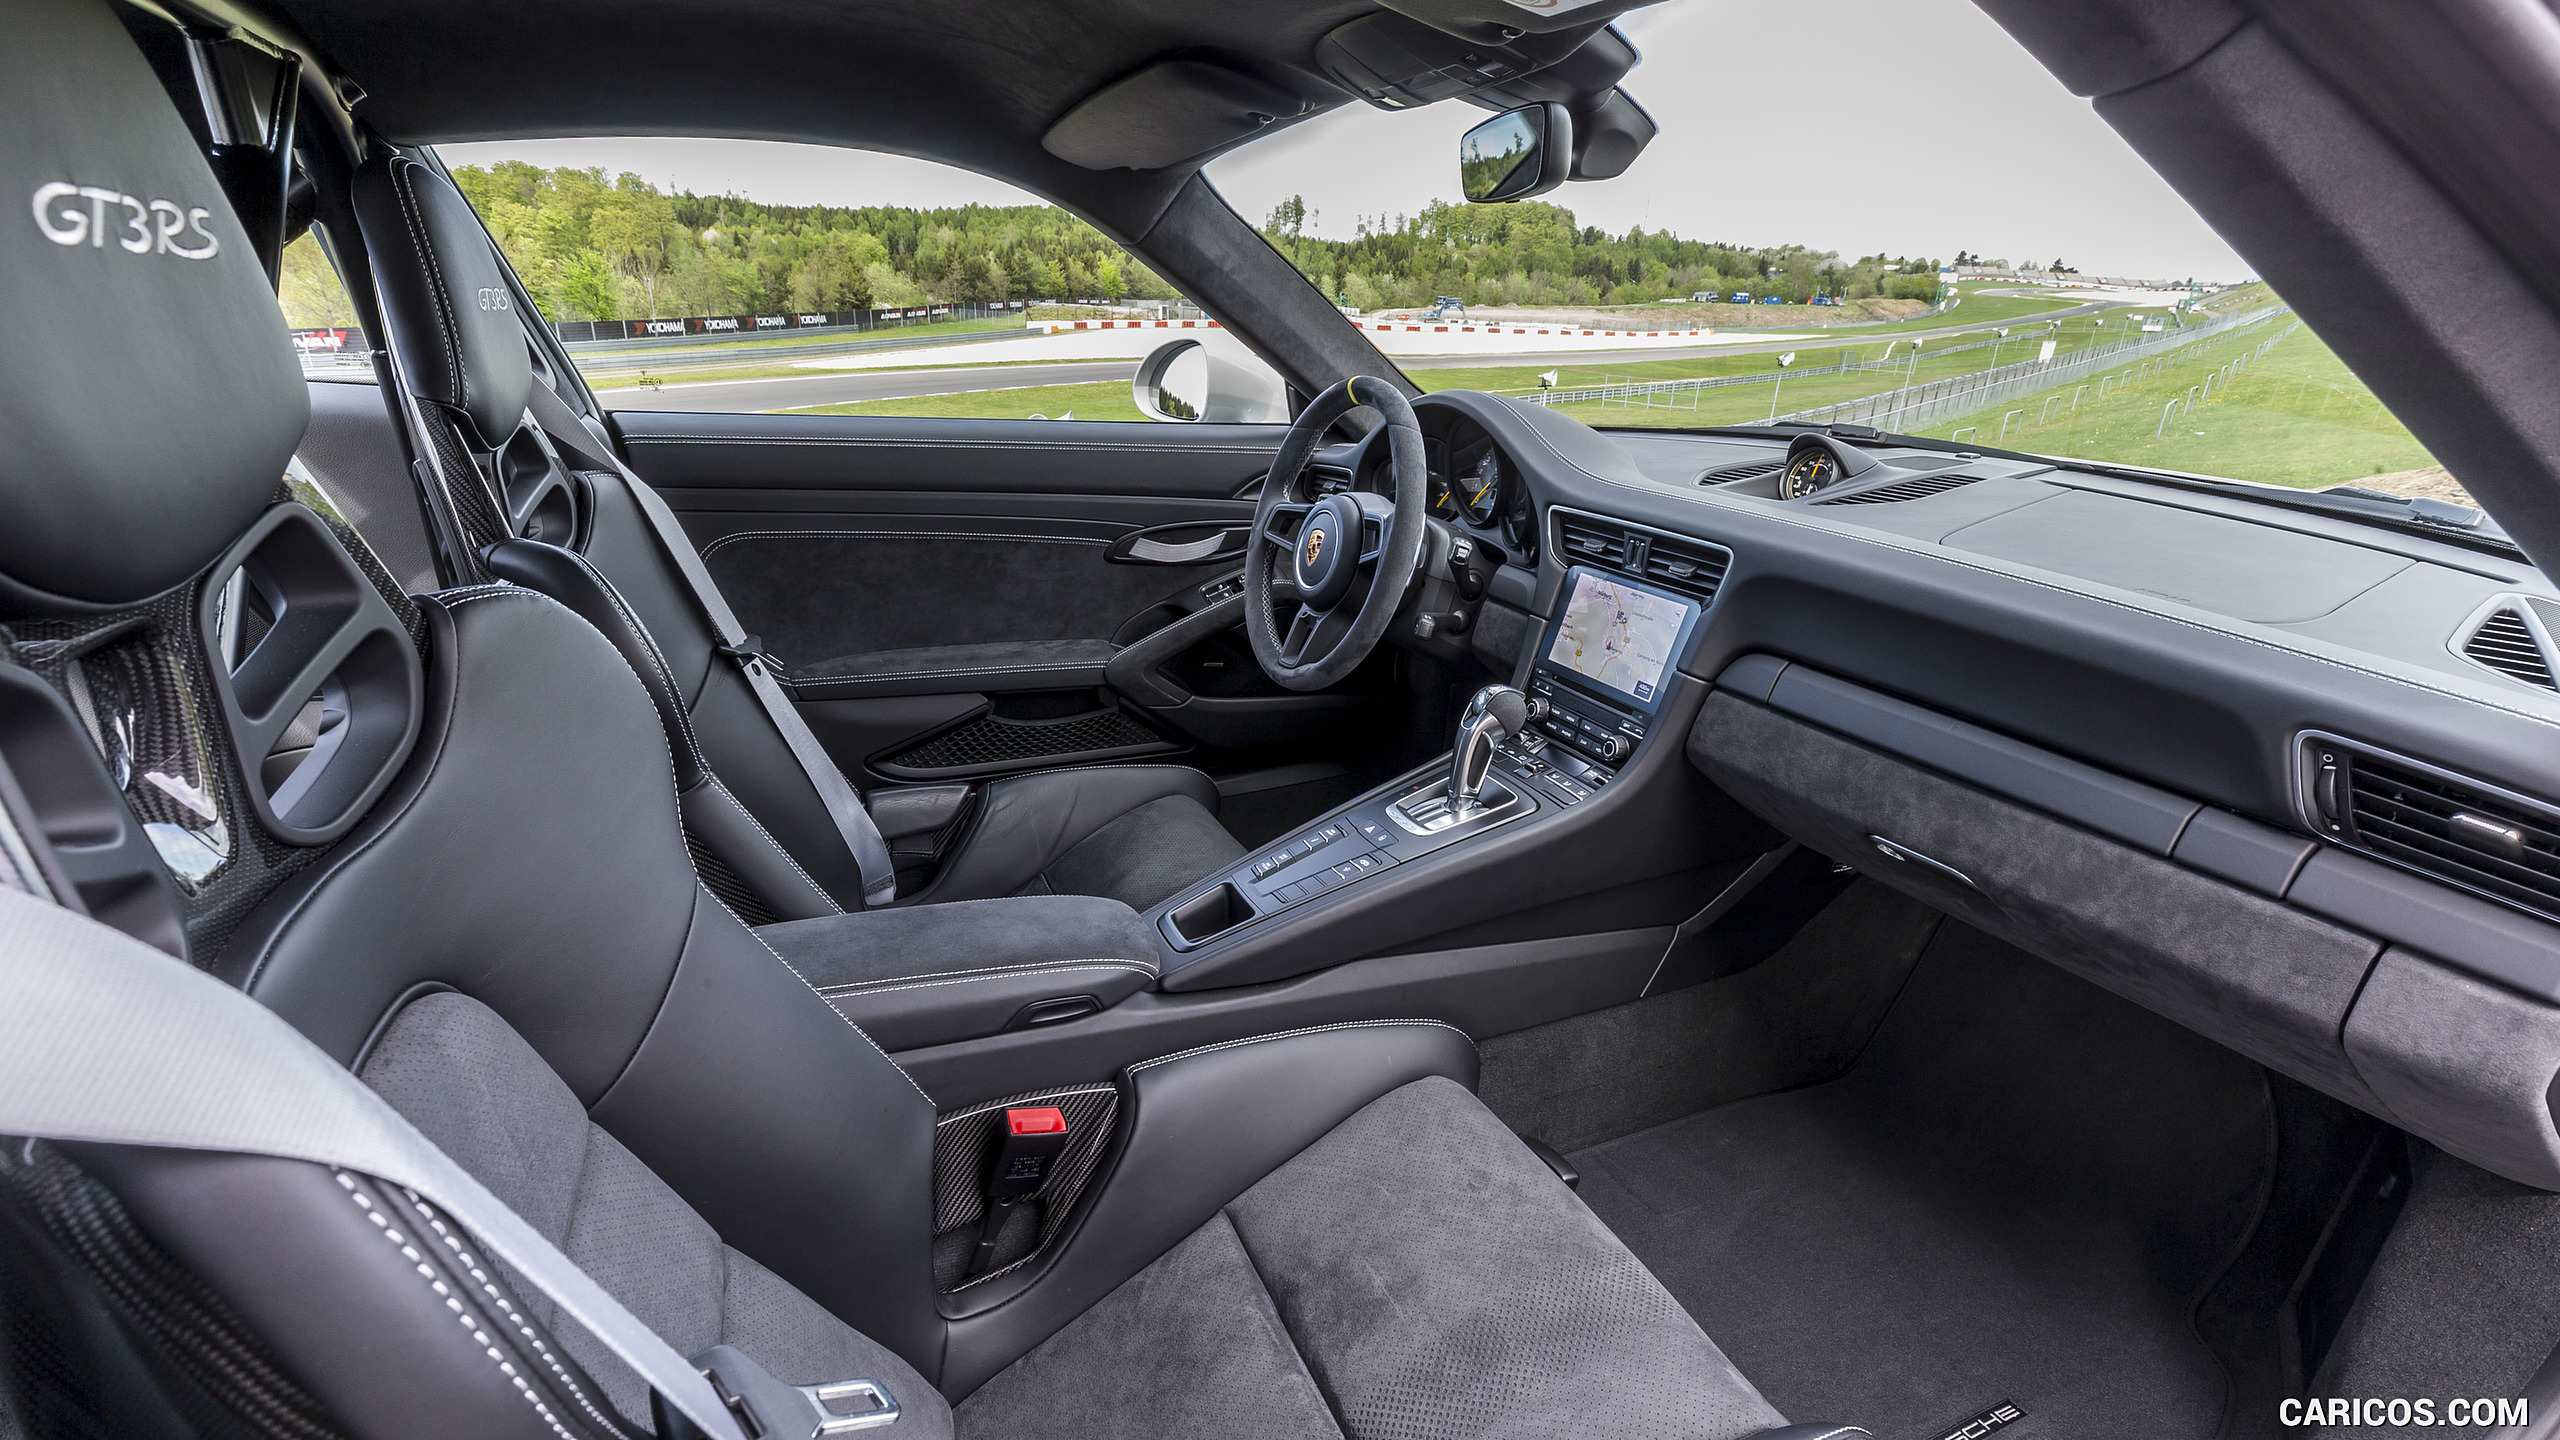 46 New 2019 Porsche 911 Interior First Drive by 2019 Porsche 911 Interior